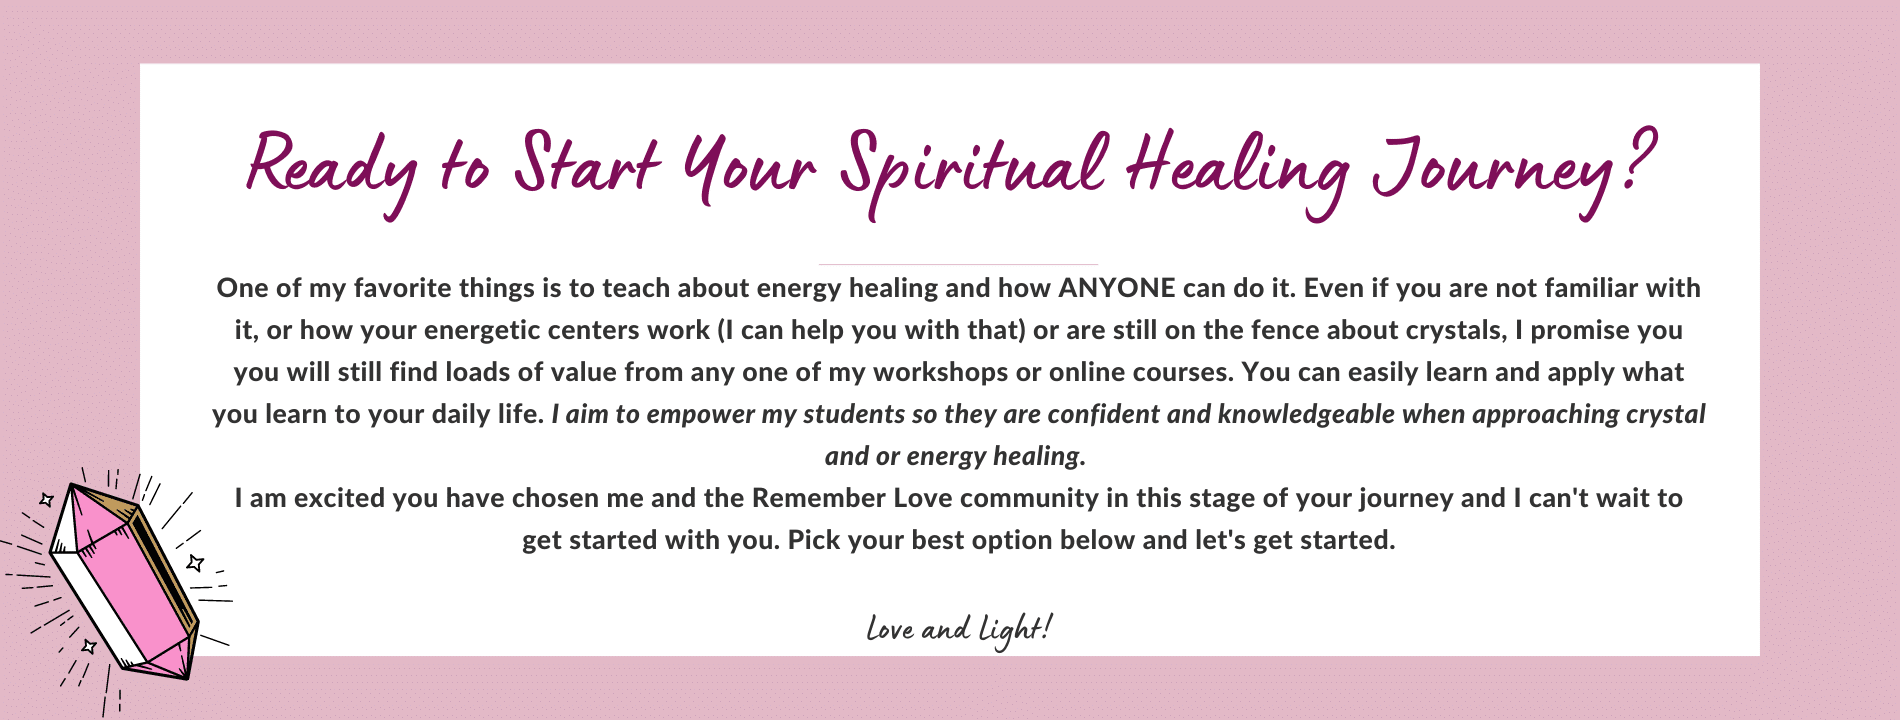 One of my favorite things is to teach about energy healing and how ANYONE can do it. Even if you are not familiar with it, or how your energetic centers work (I can help you with that) or are still on the fence about crystals, I promise you you will still find loads of value from any one of my workshops or online courses. You can easily learn and apply what you learn to your daily life. I aim to empower my students so they are confident and knowledgeable when approaching crystal and or energy healing. I am excited you have chosen me and the Remember Love community in this stage of your journey and I can't wait to get started with you. Pick your best option below and let's get started. Love and Light!